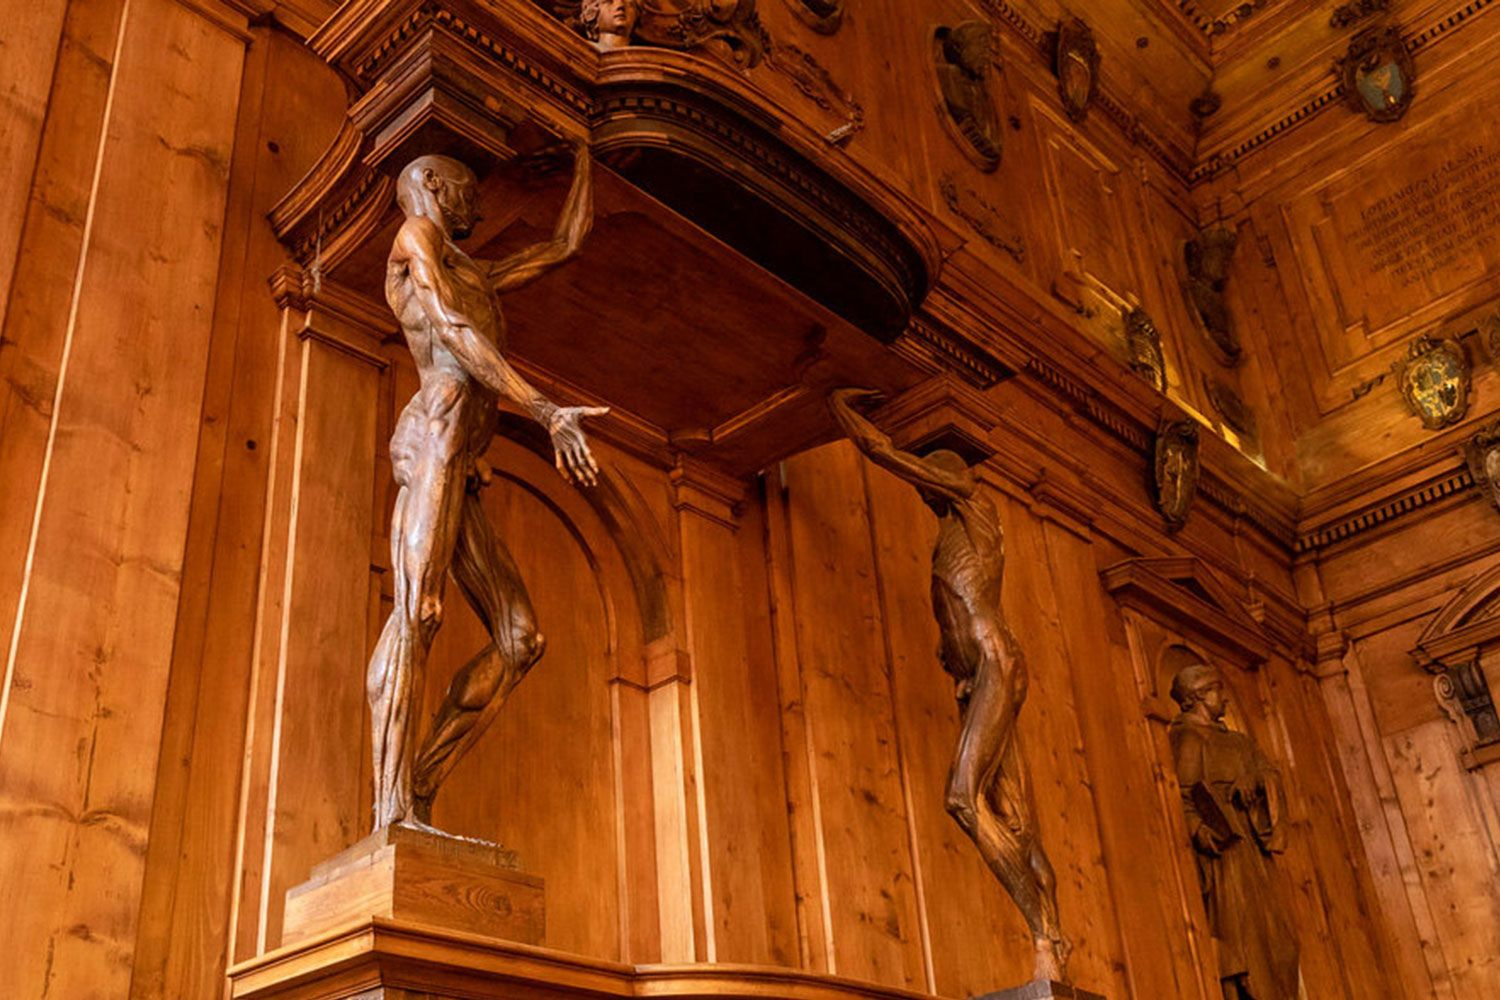 Carved wooden anatomical human figures from the 16th century in the Anatomy Room